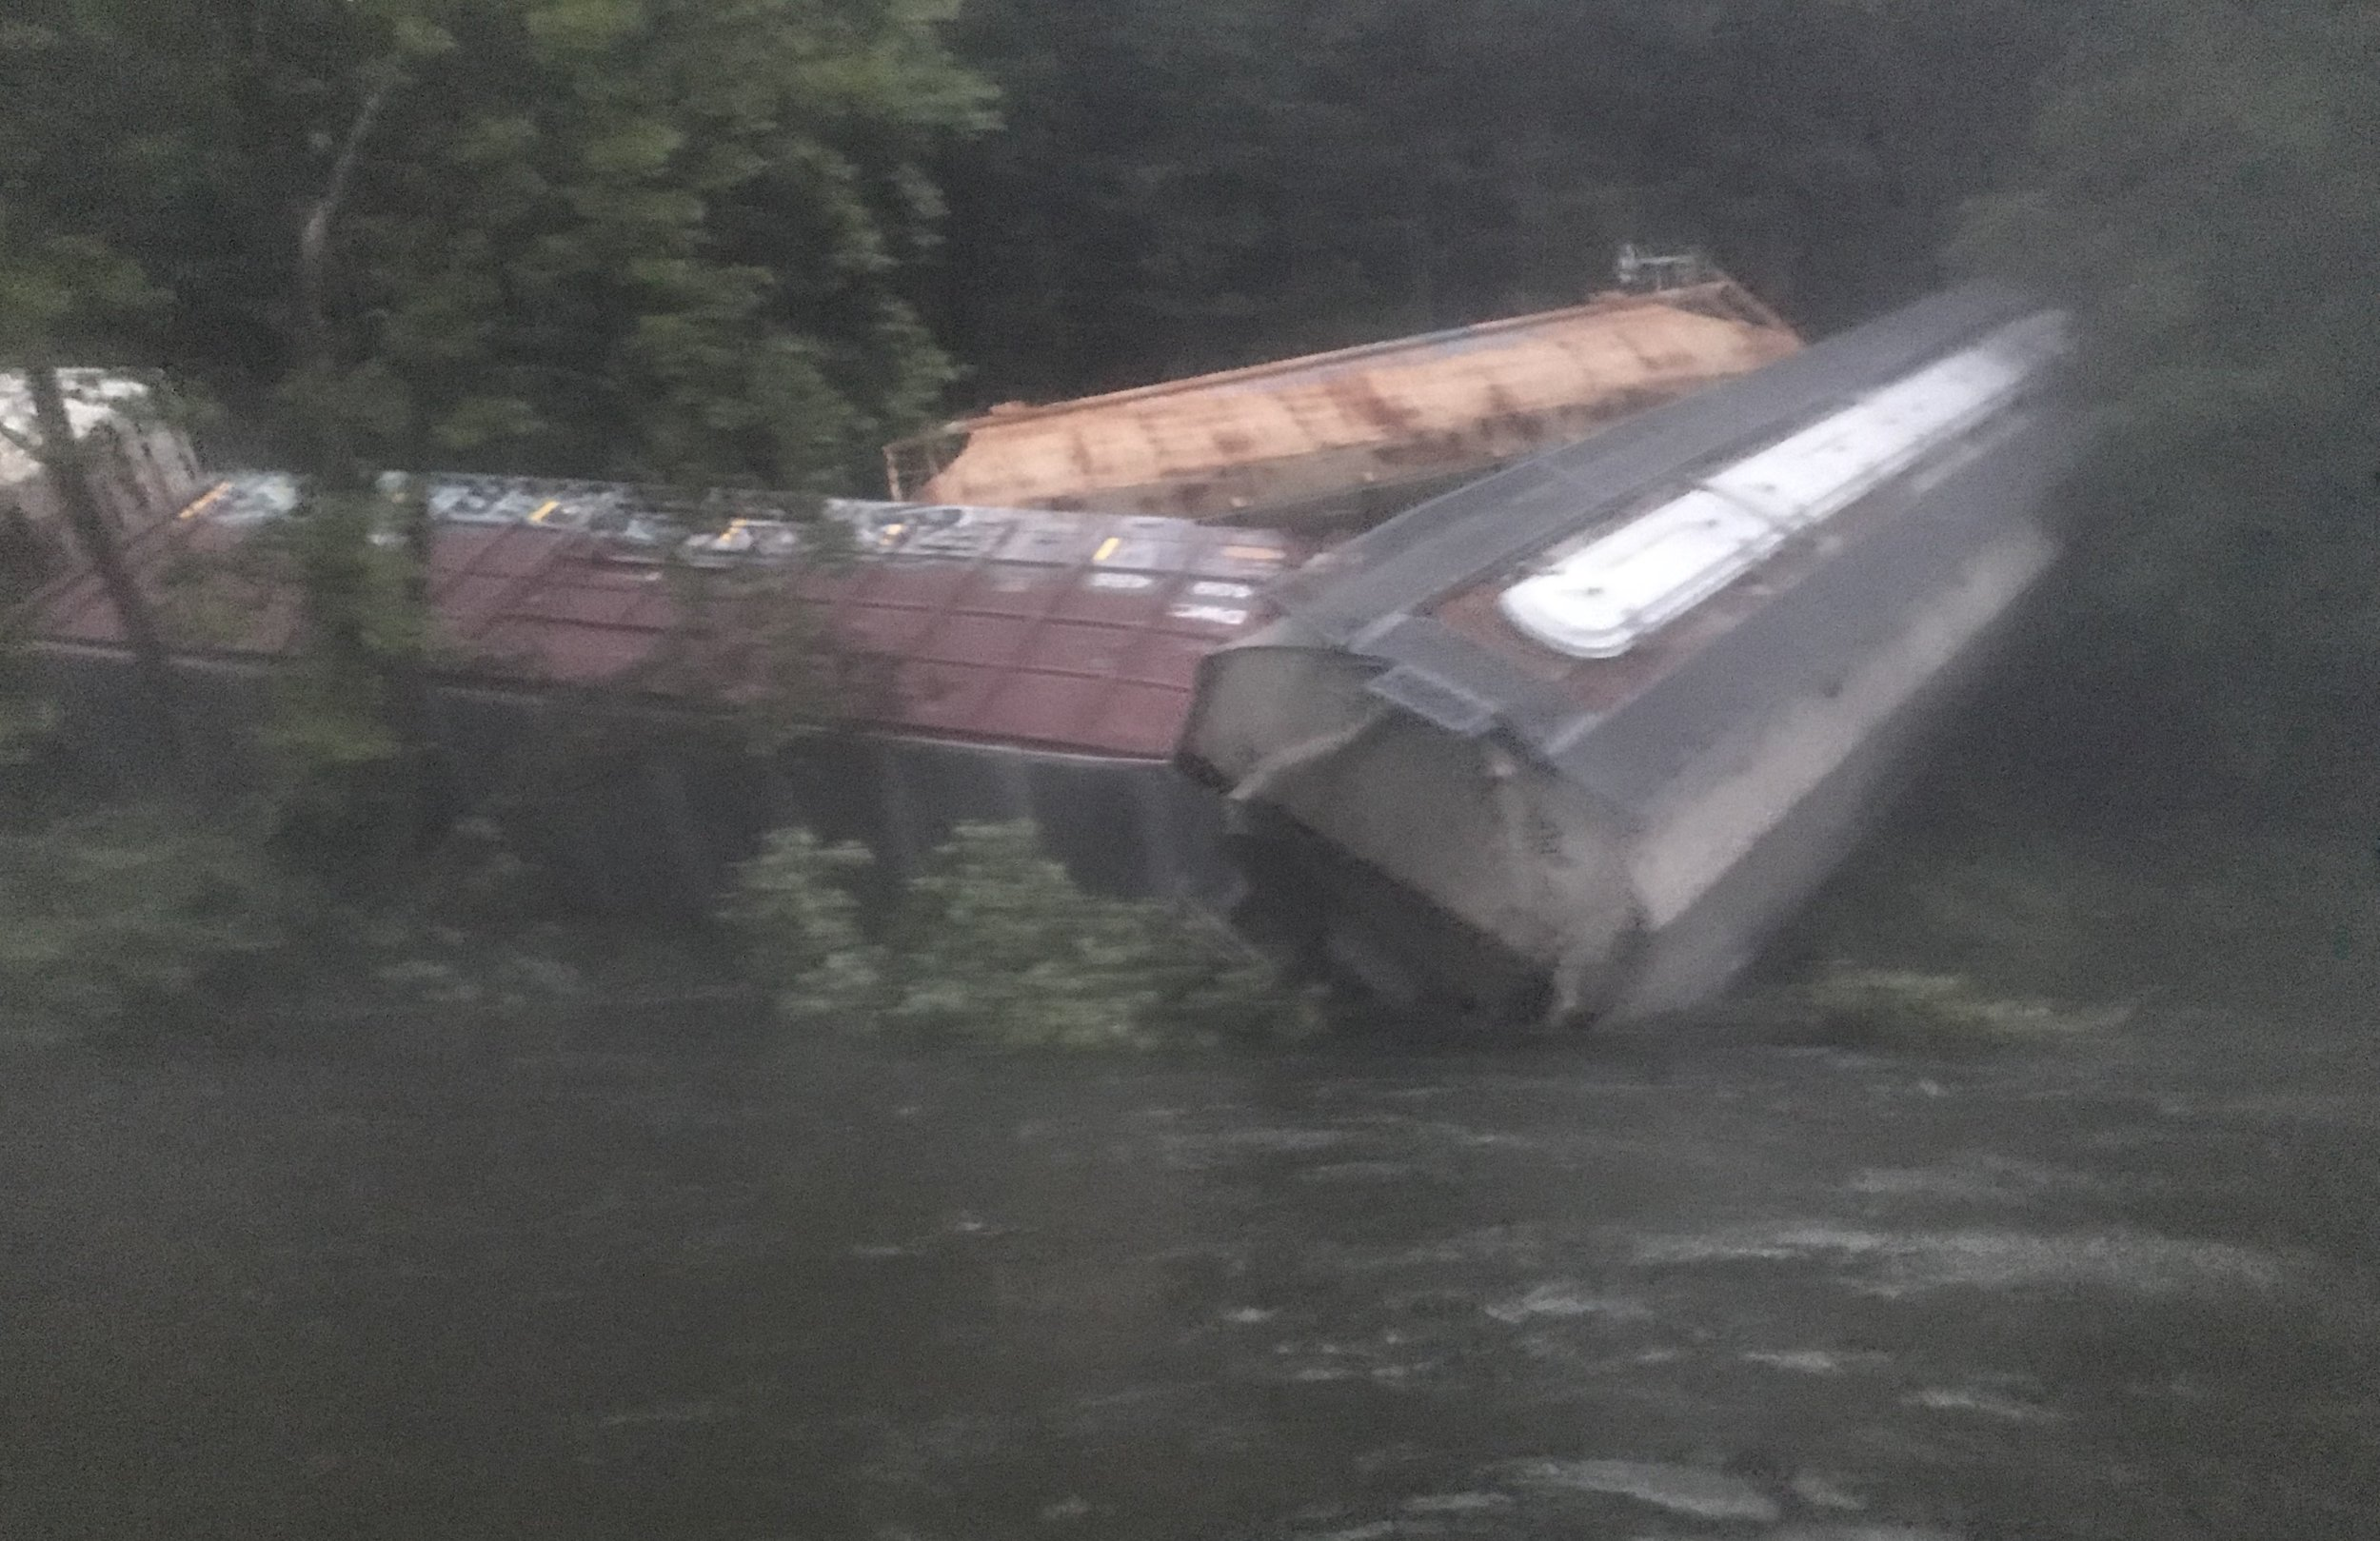 Derailed trains near Deposit, NY in the Upper Delaware River  Photo Credit: Friends of the Upper Delaware River